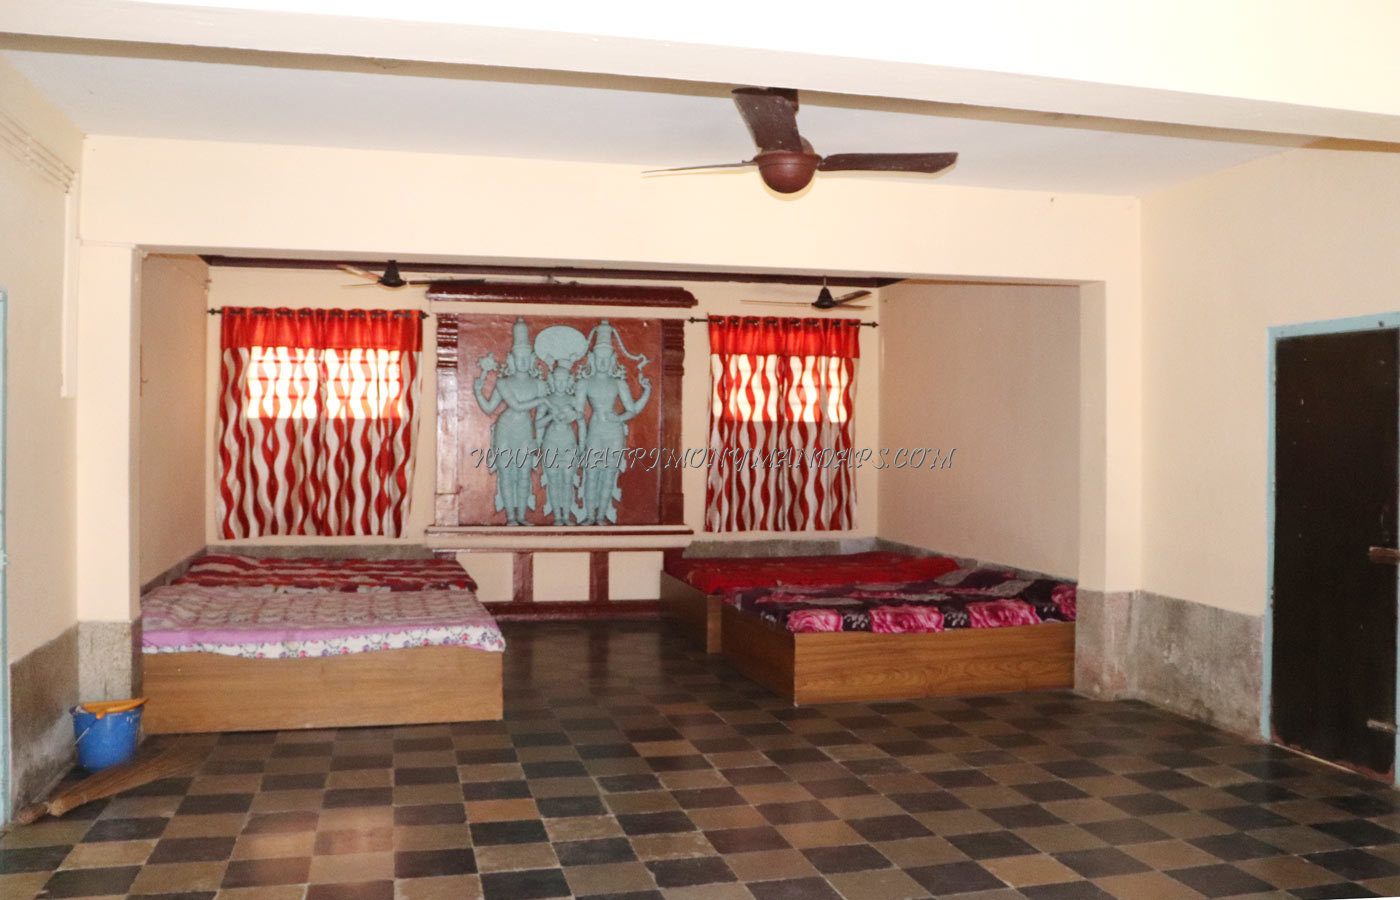 Find More Marriage Halls in West Nada